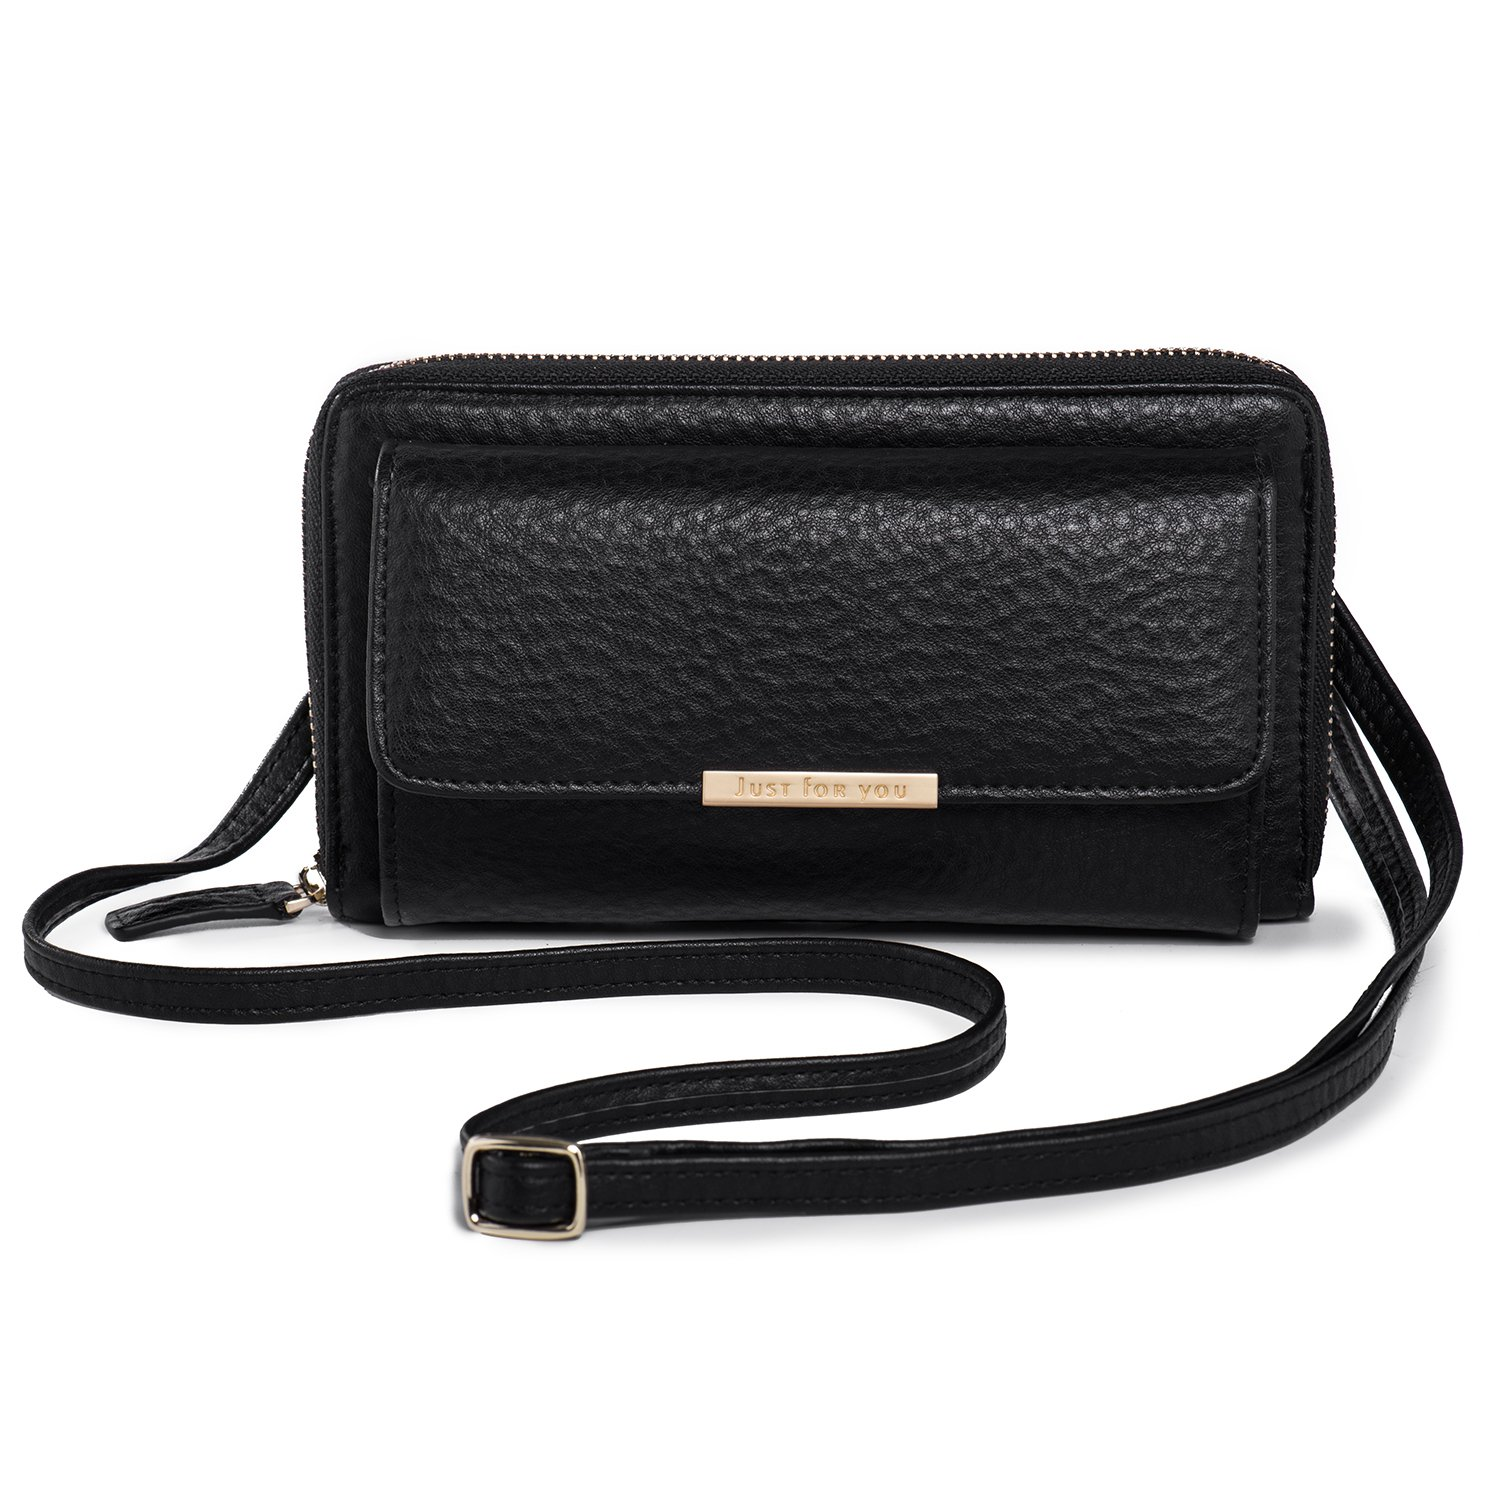 Crossbody Wallet Women Cellphone Purse PU Leather Clutch Handbag with Flap Pocket + Katloo Nail Clipper K_KL360-Black